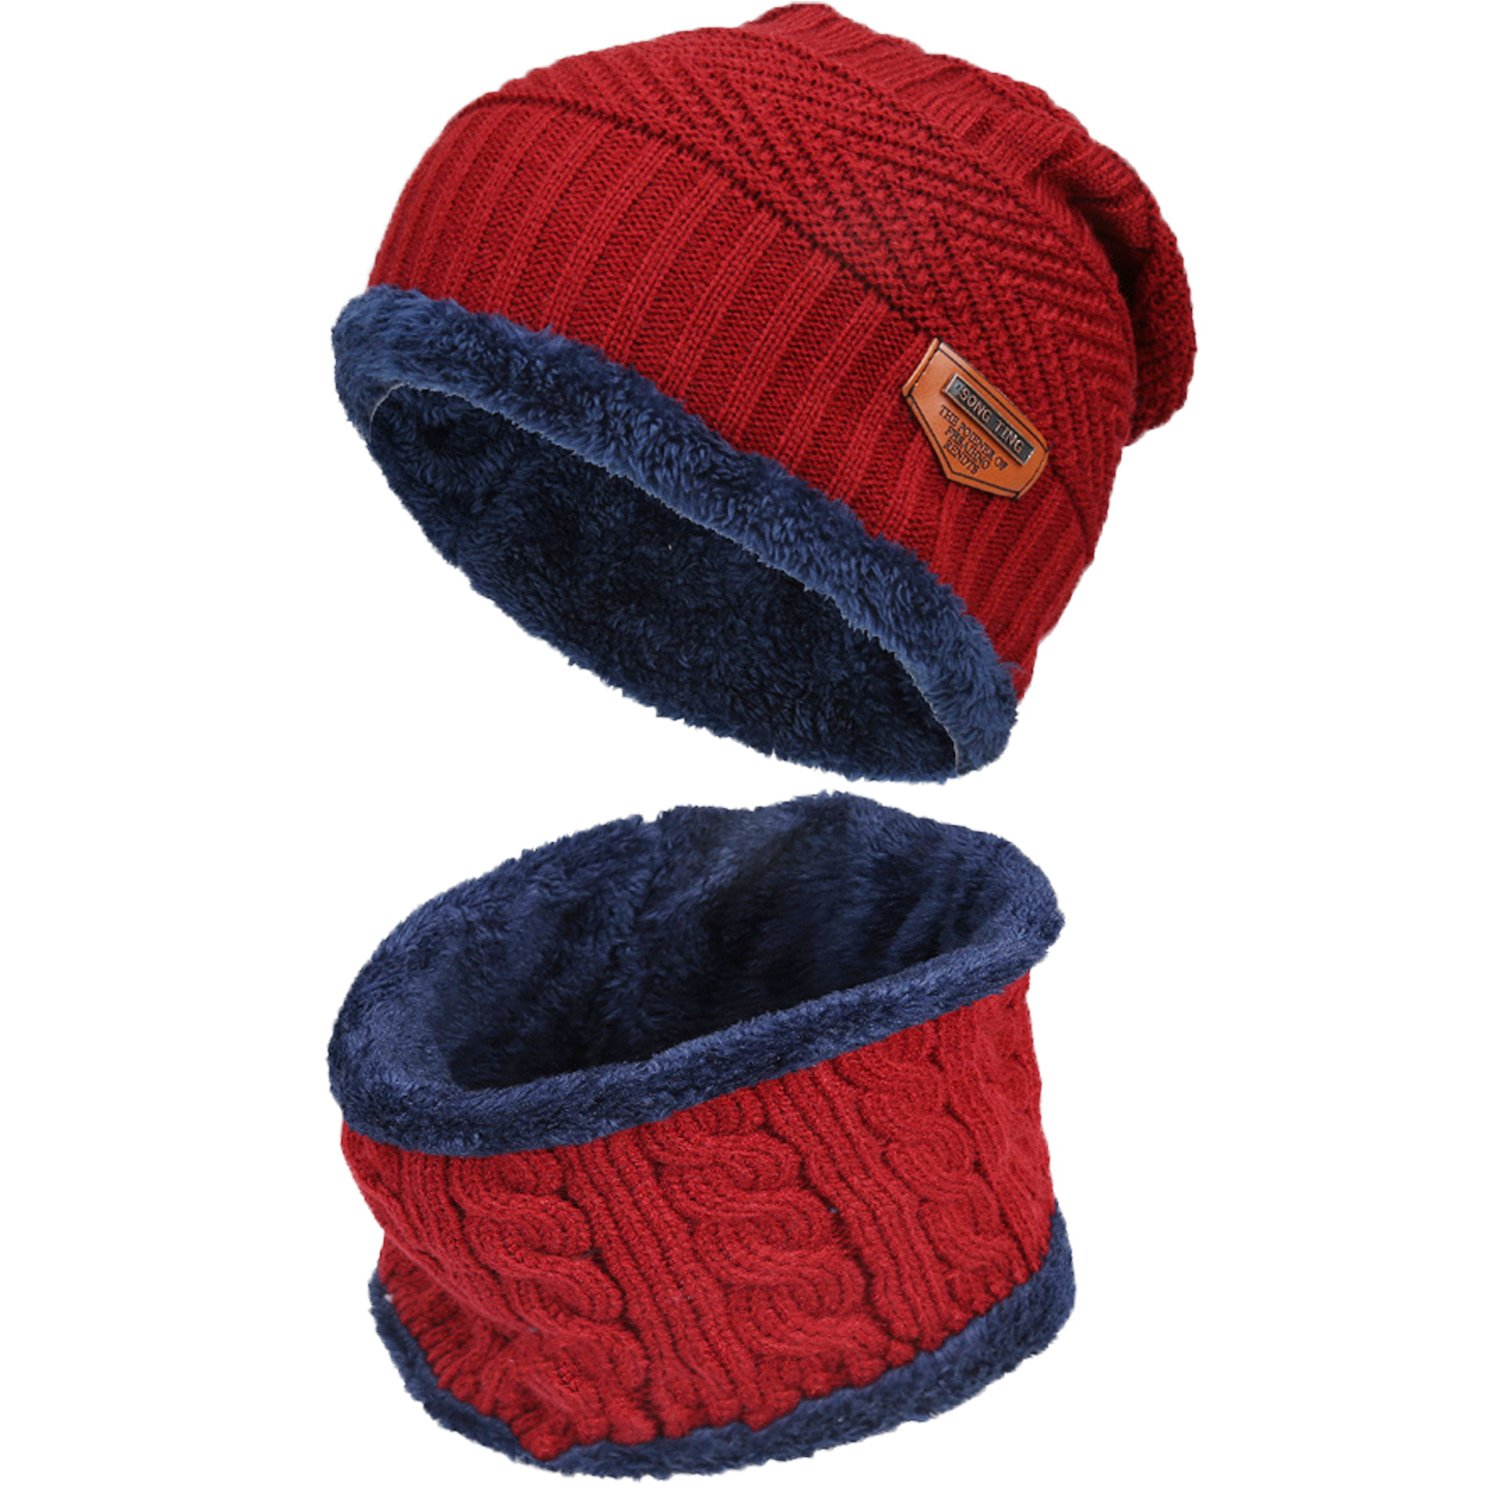 b4b39fc8a85 Bequemer Laden Kids Winter Beanie Hat and Scarf Set Warm Knit Beanie Cap  and Circle Scarf